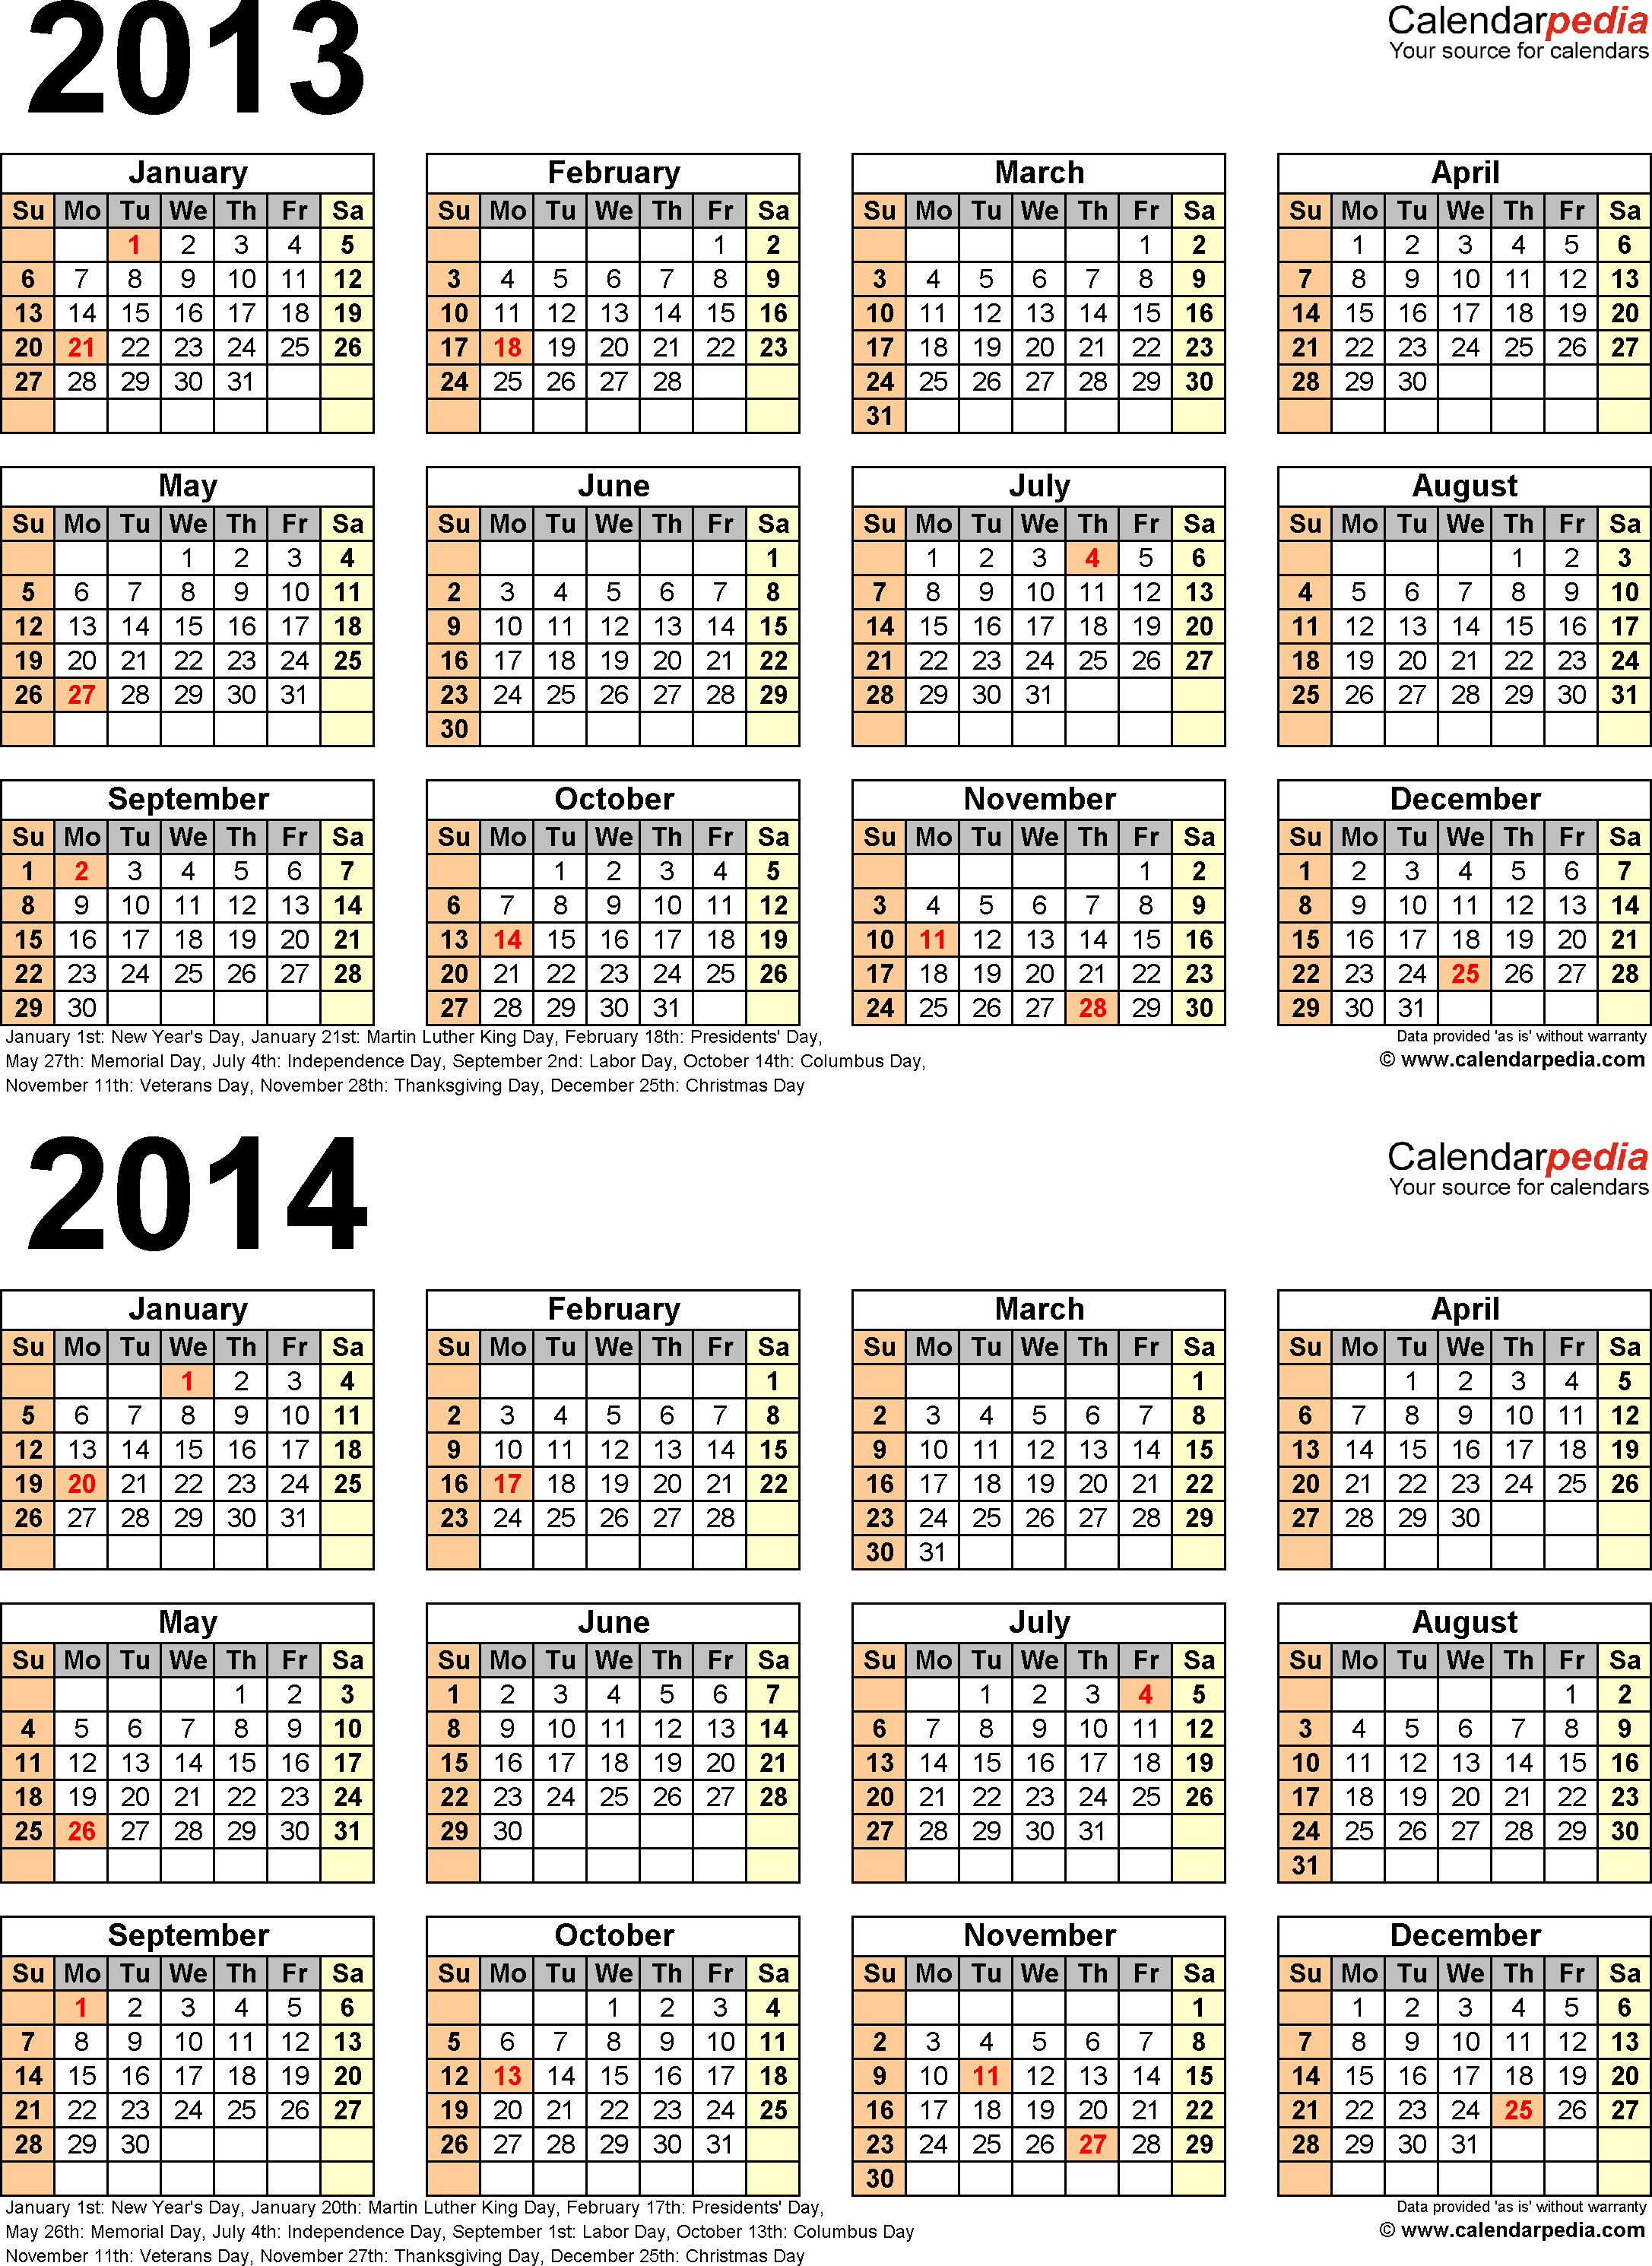 Template 4: PDF template for two year calendar 2013/2014 (portrait orientation, 1 page)